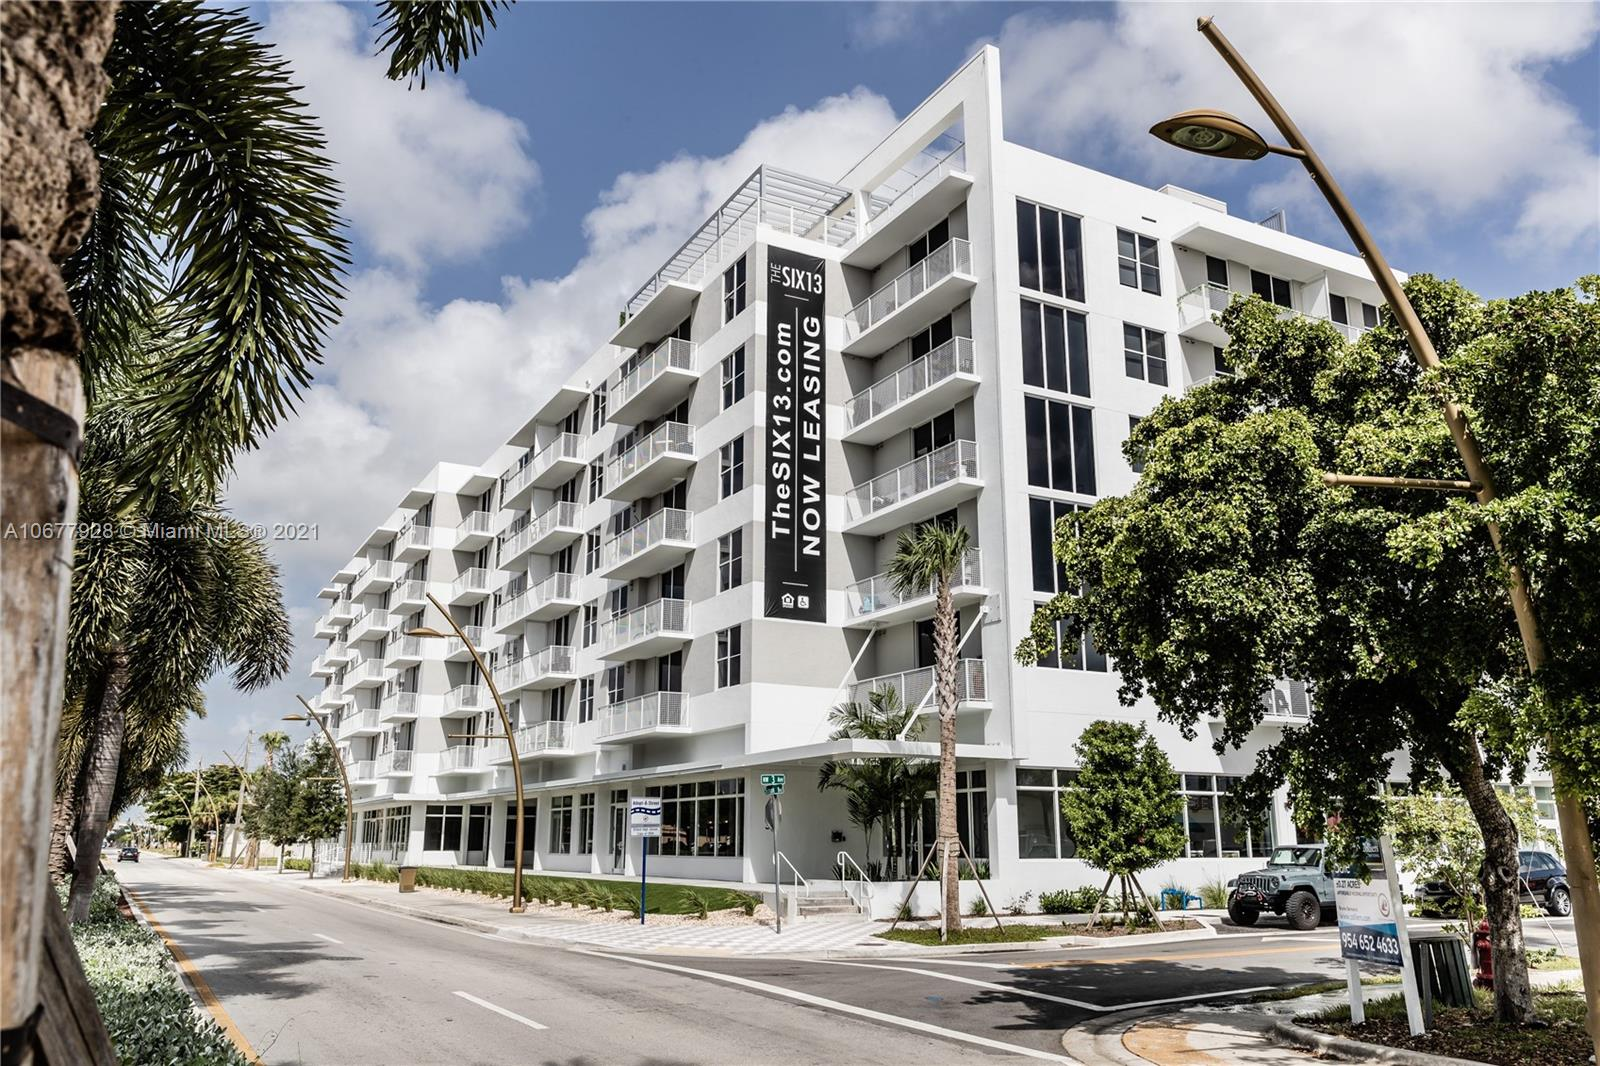 613 Nw 3rd Ave Fort Lauderdale Florida 33311 Commercial Office For Sale